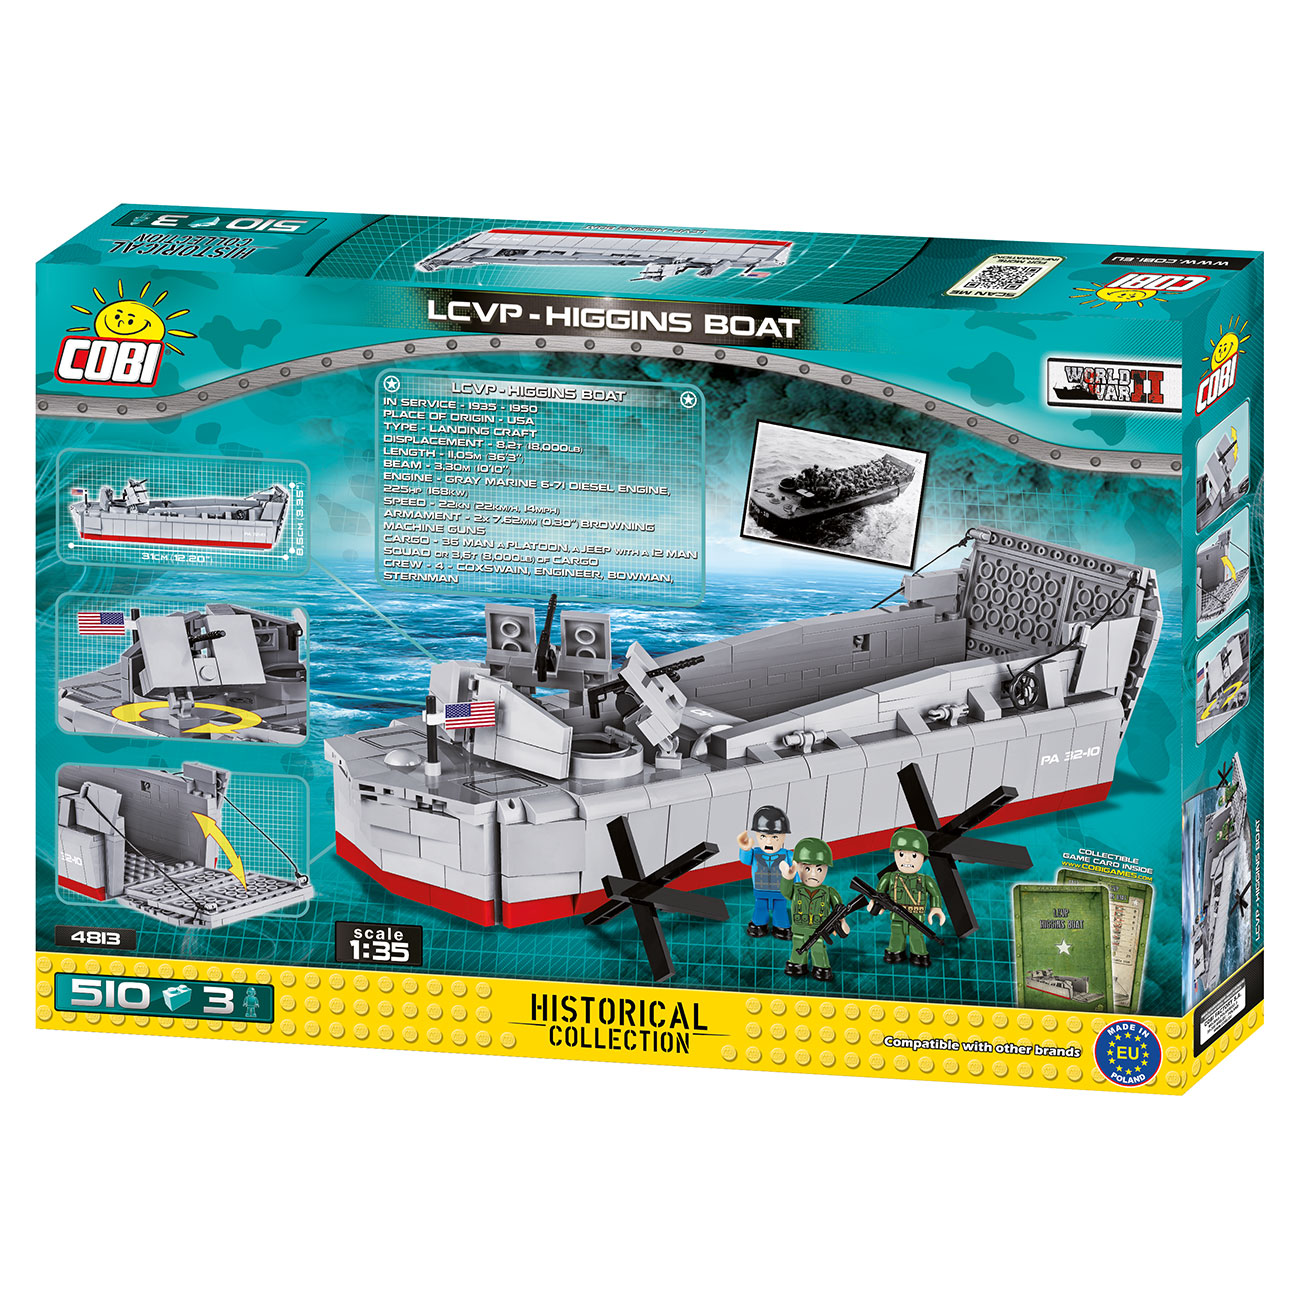 Cobi Historical Collection Bausatz Landungsboot LCVP Higgins Boat 510 Teile 4813 2